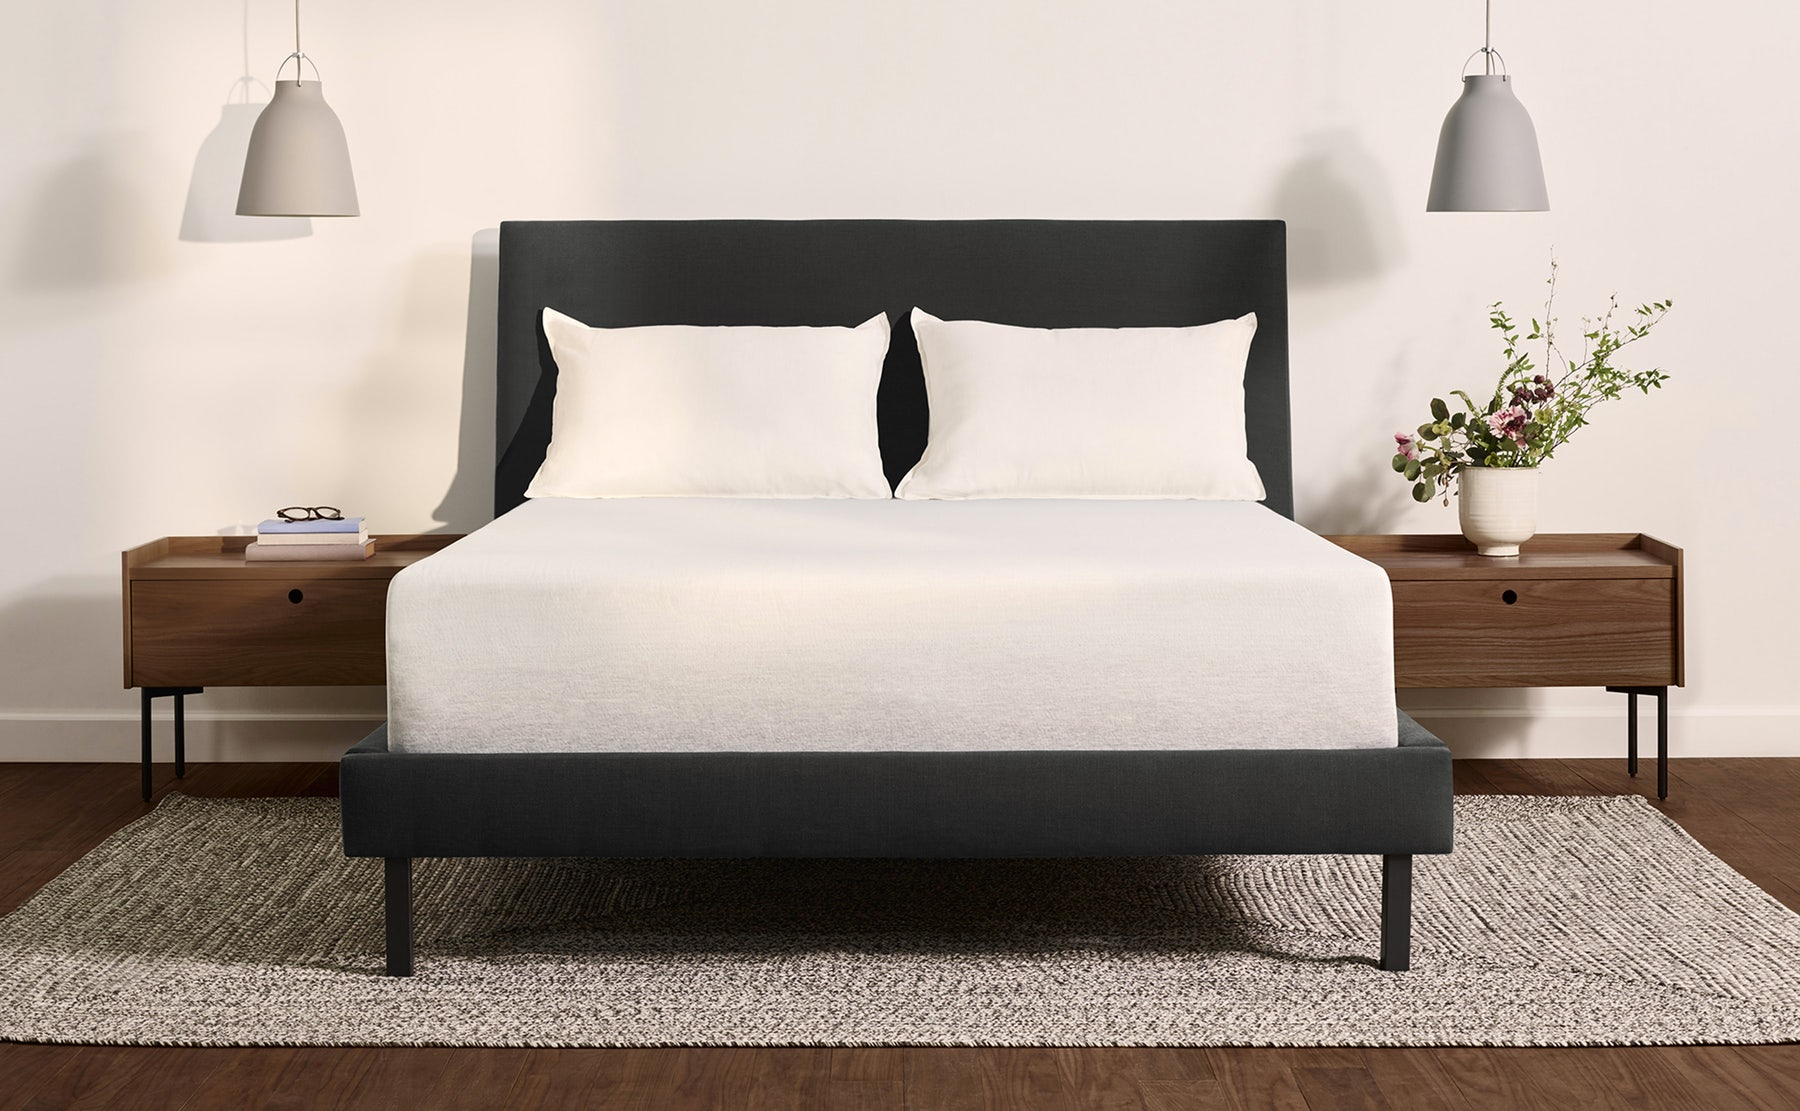 casper wave best side sleepers mattress